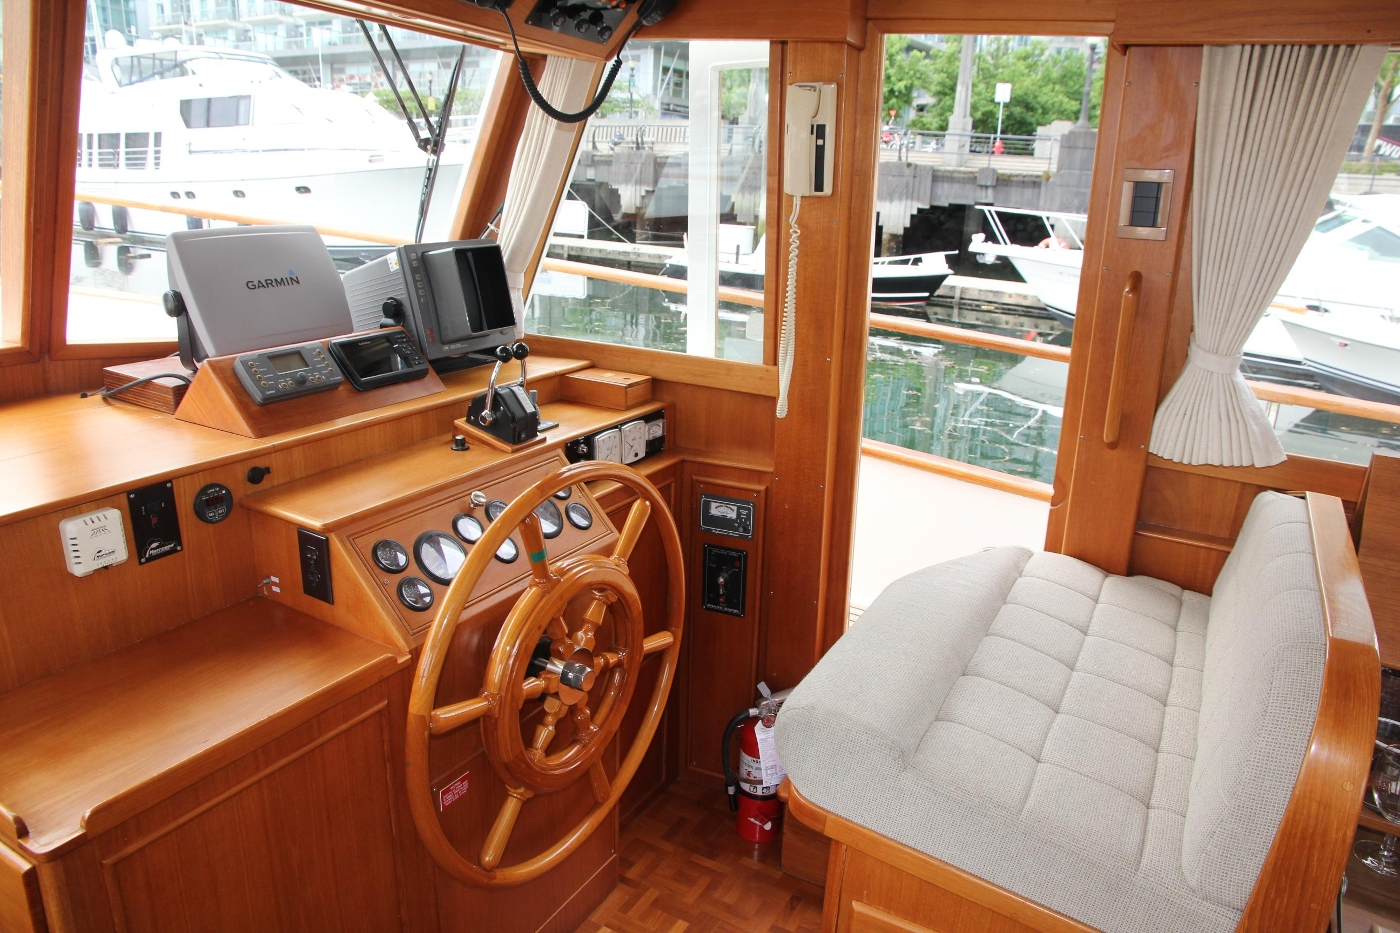 2001 Grand Banks 42 Classic, Lower Helm